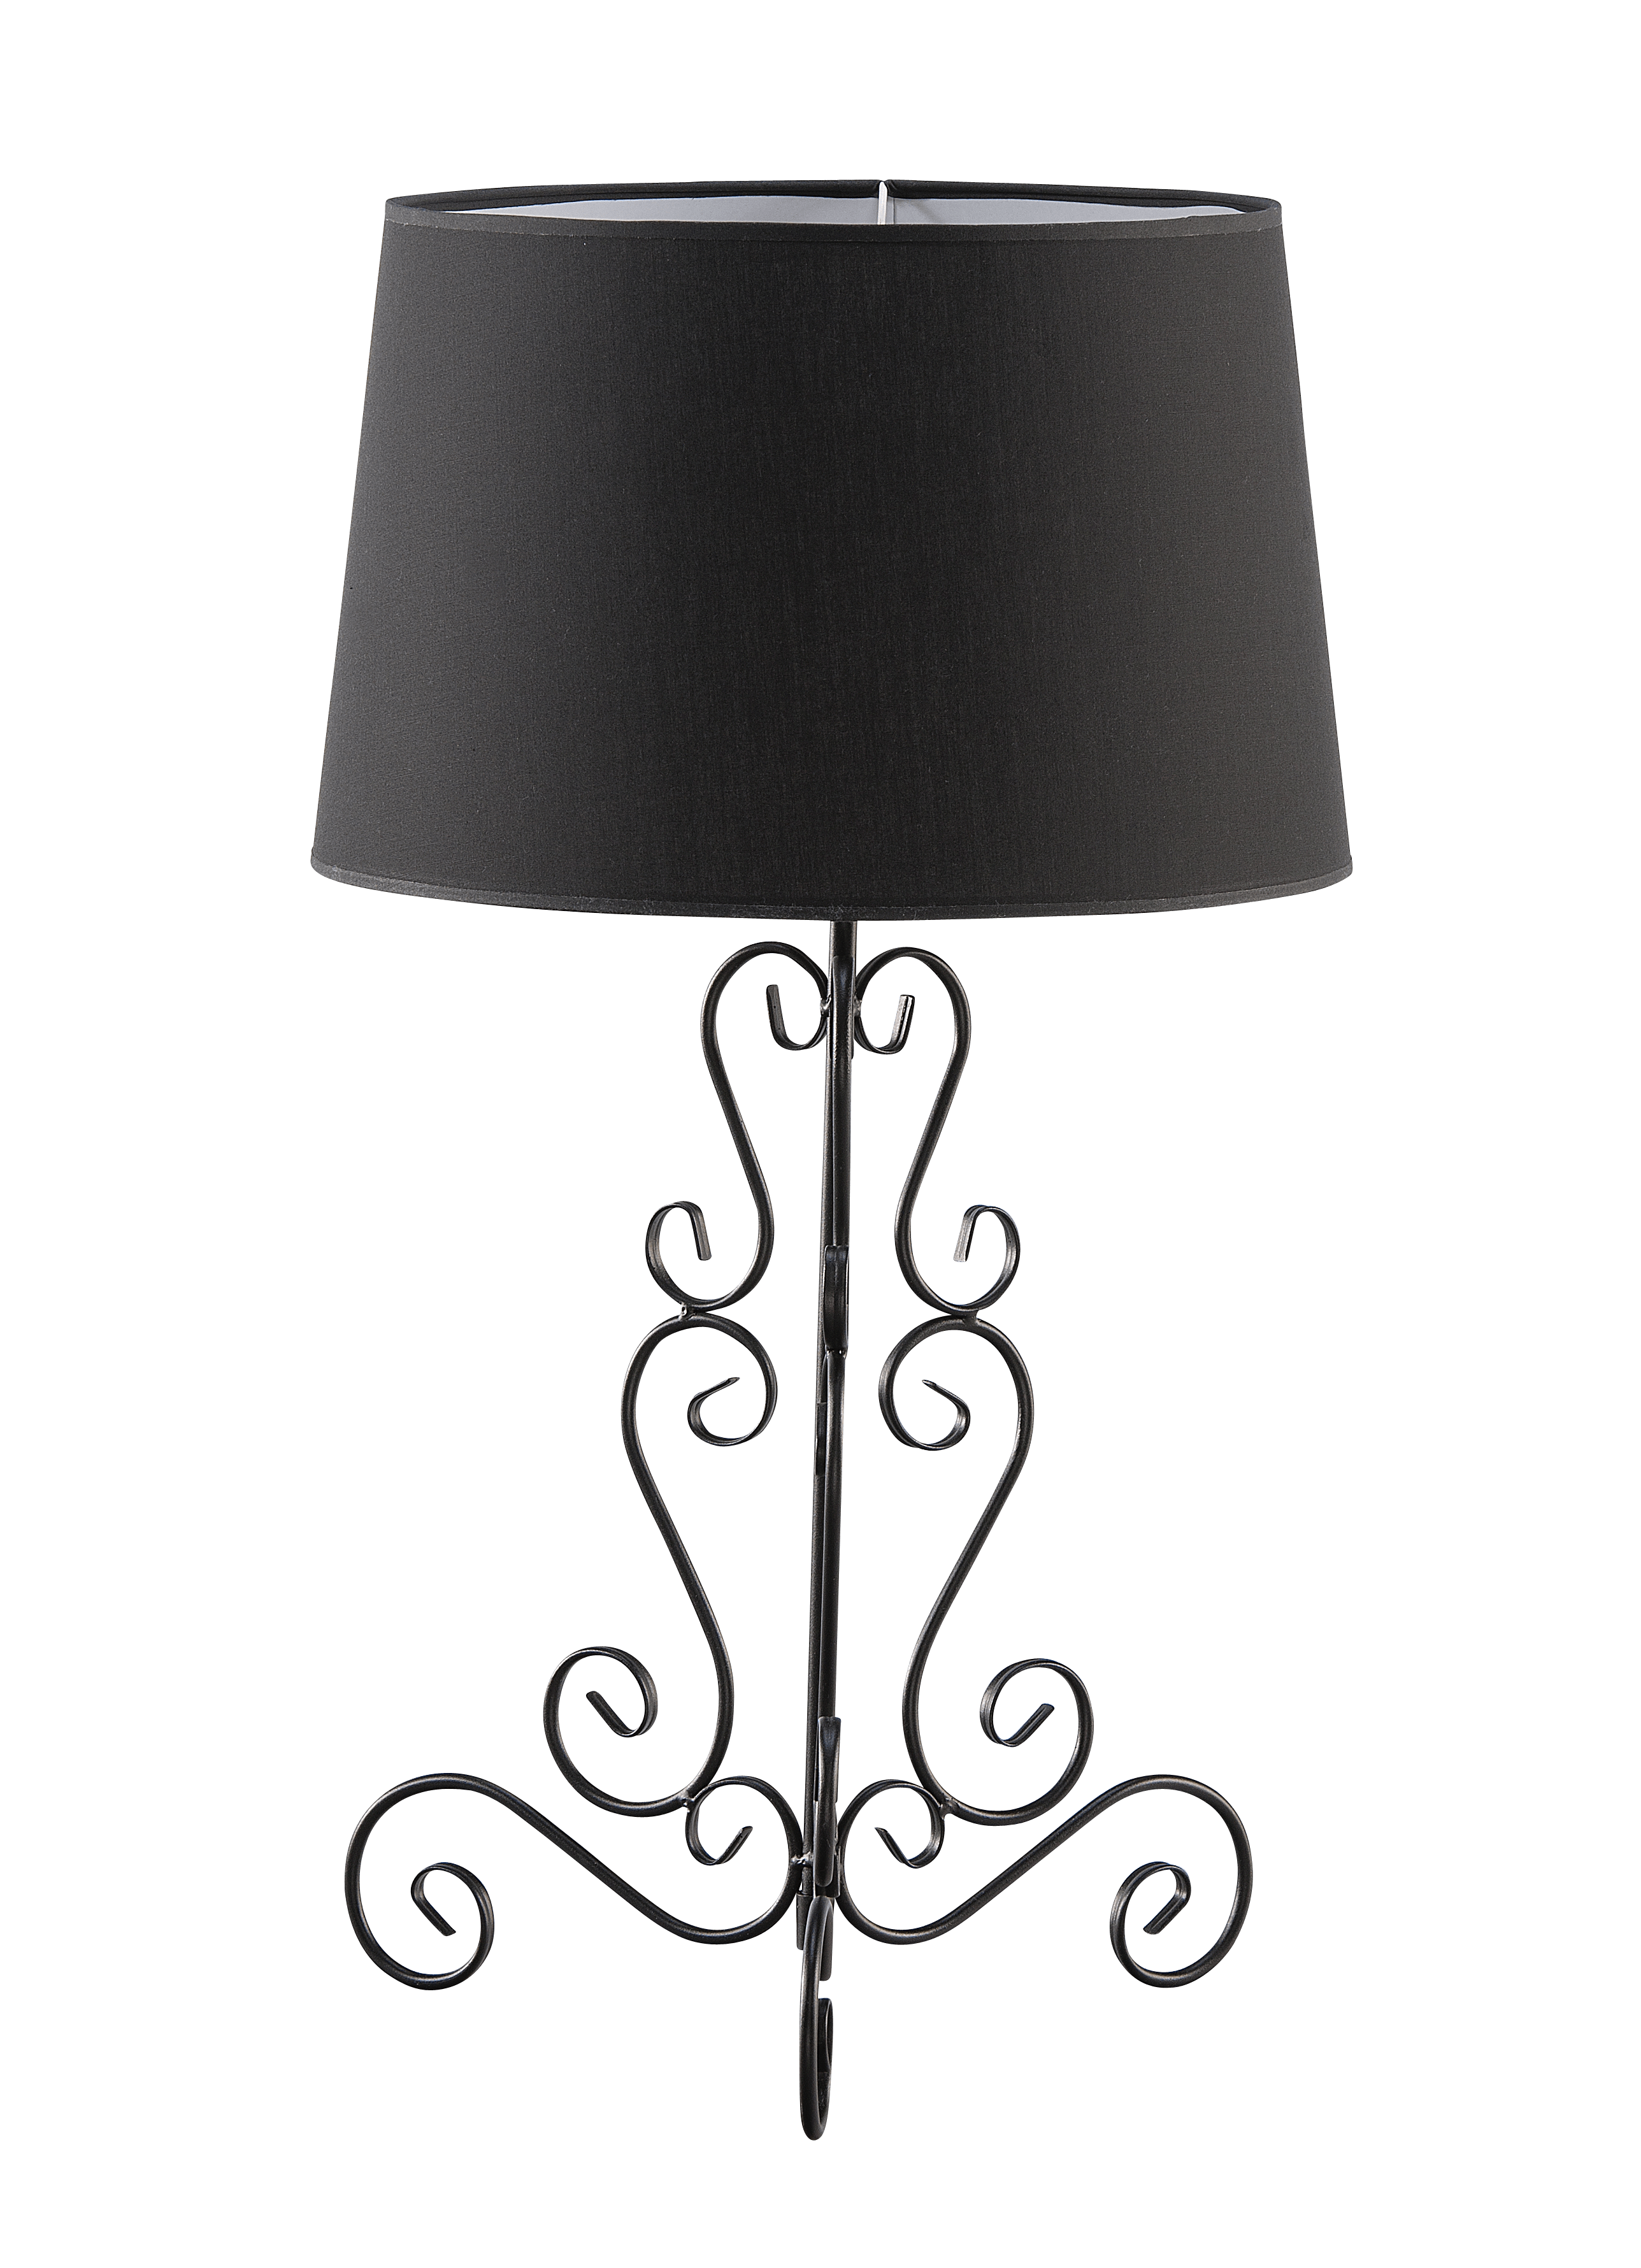 Lampa de noapte VEN-ART BLACK No. 2533